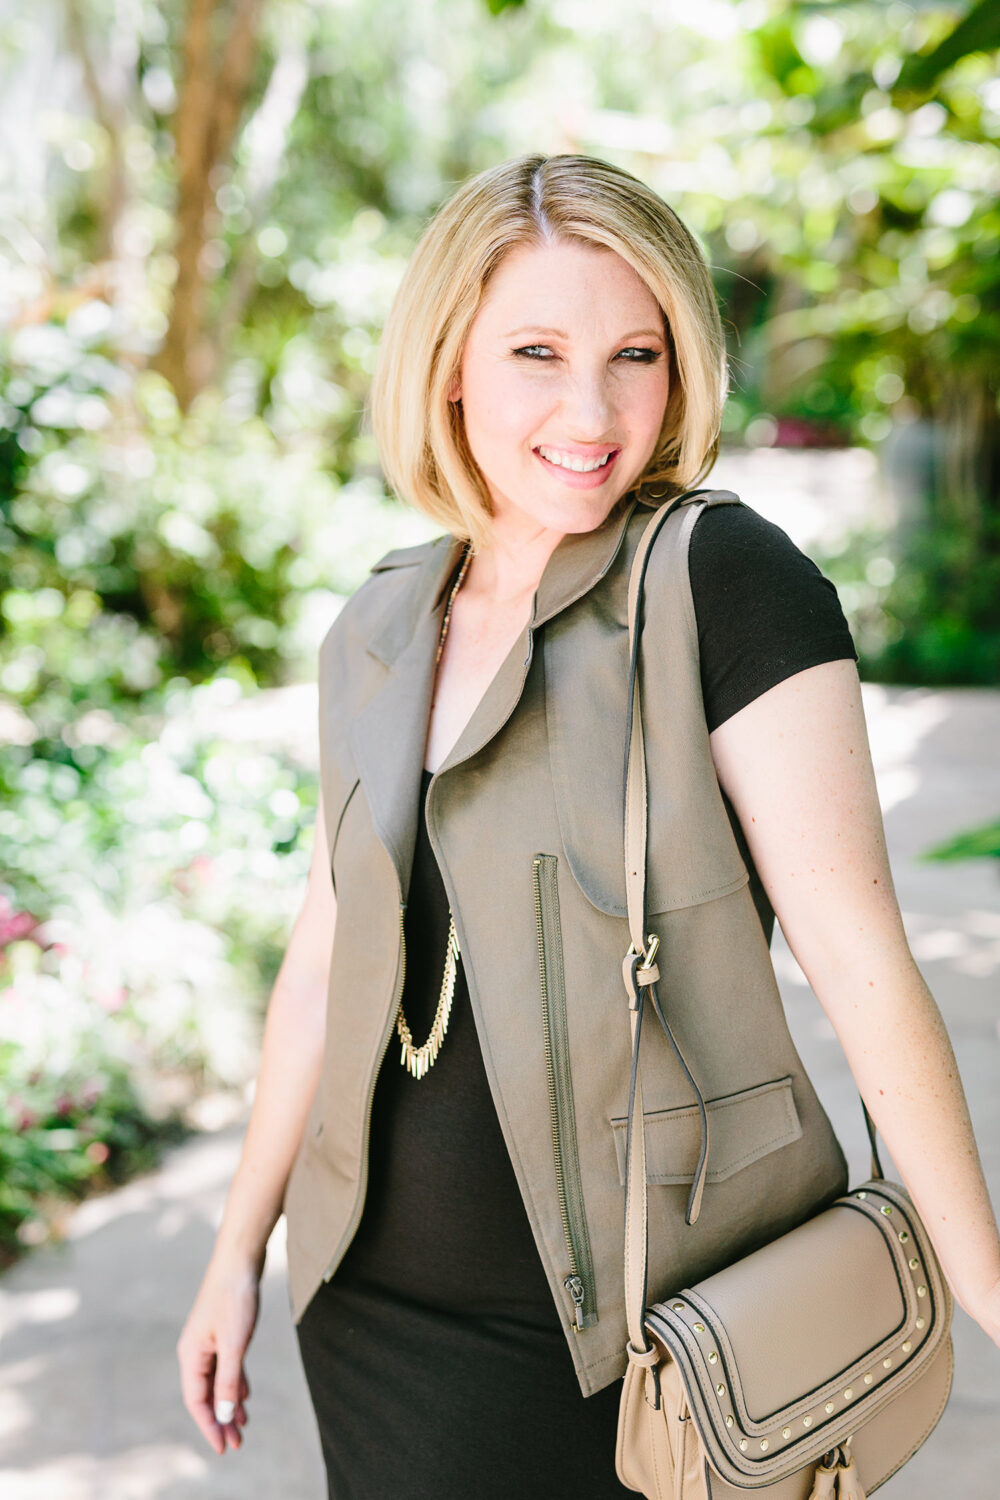 Stitch Fix Review July: Three simple tips from the Stitch Fix Styling Team that tell how to get great staples like this Pixley Vincenzo Cargo Vest!